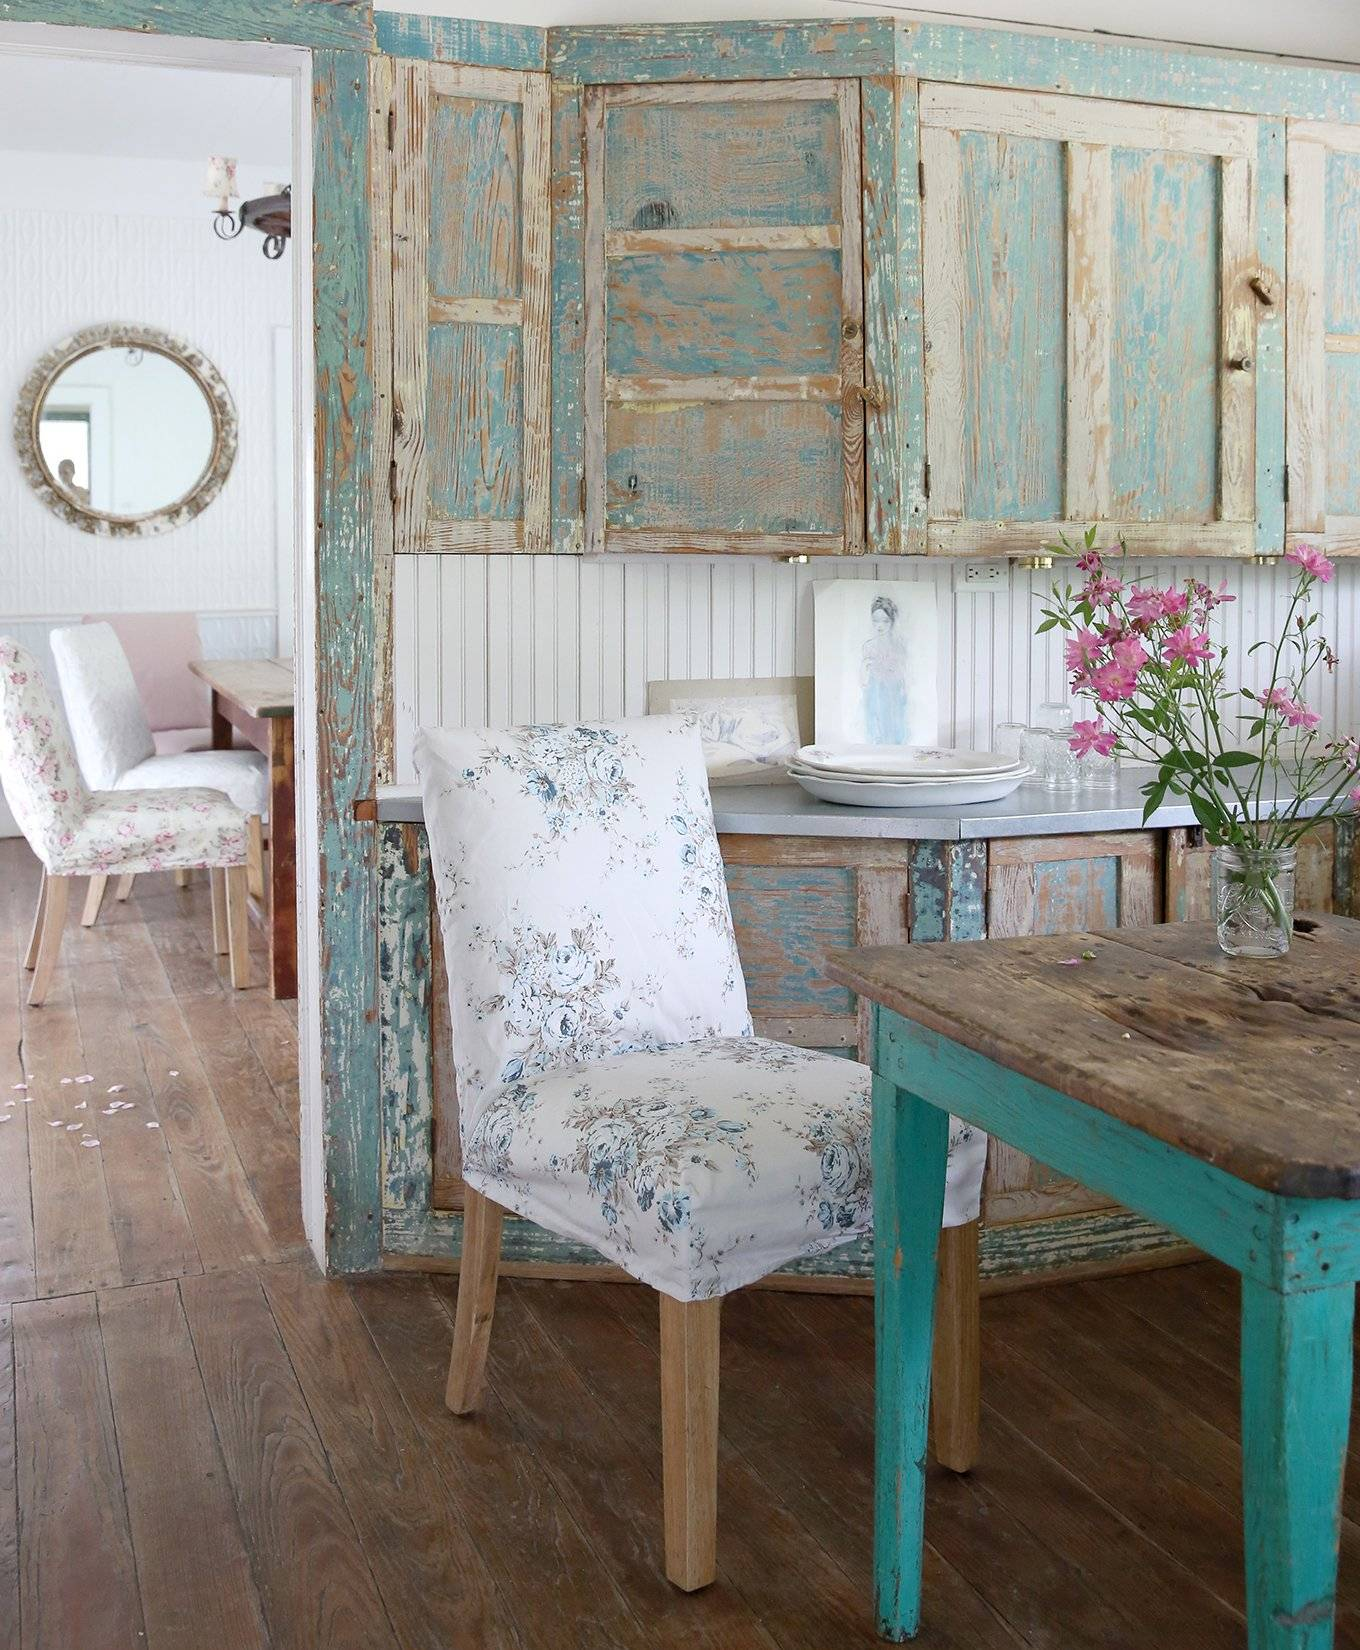 Shabby Chic Furniture: Shabby Chic: The Official Rachel Ashwell Shabby Chic